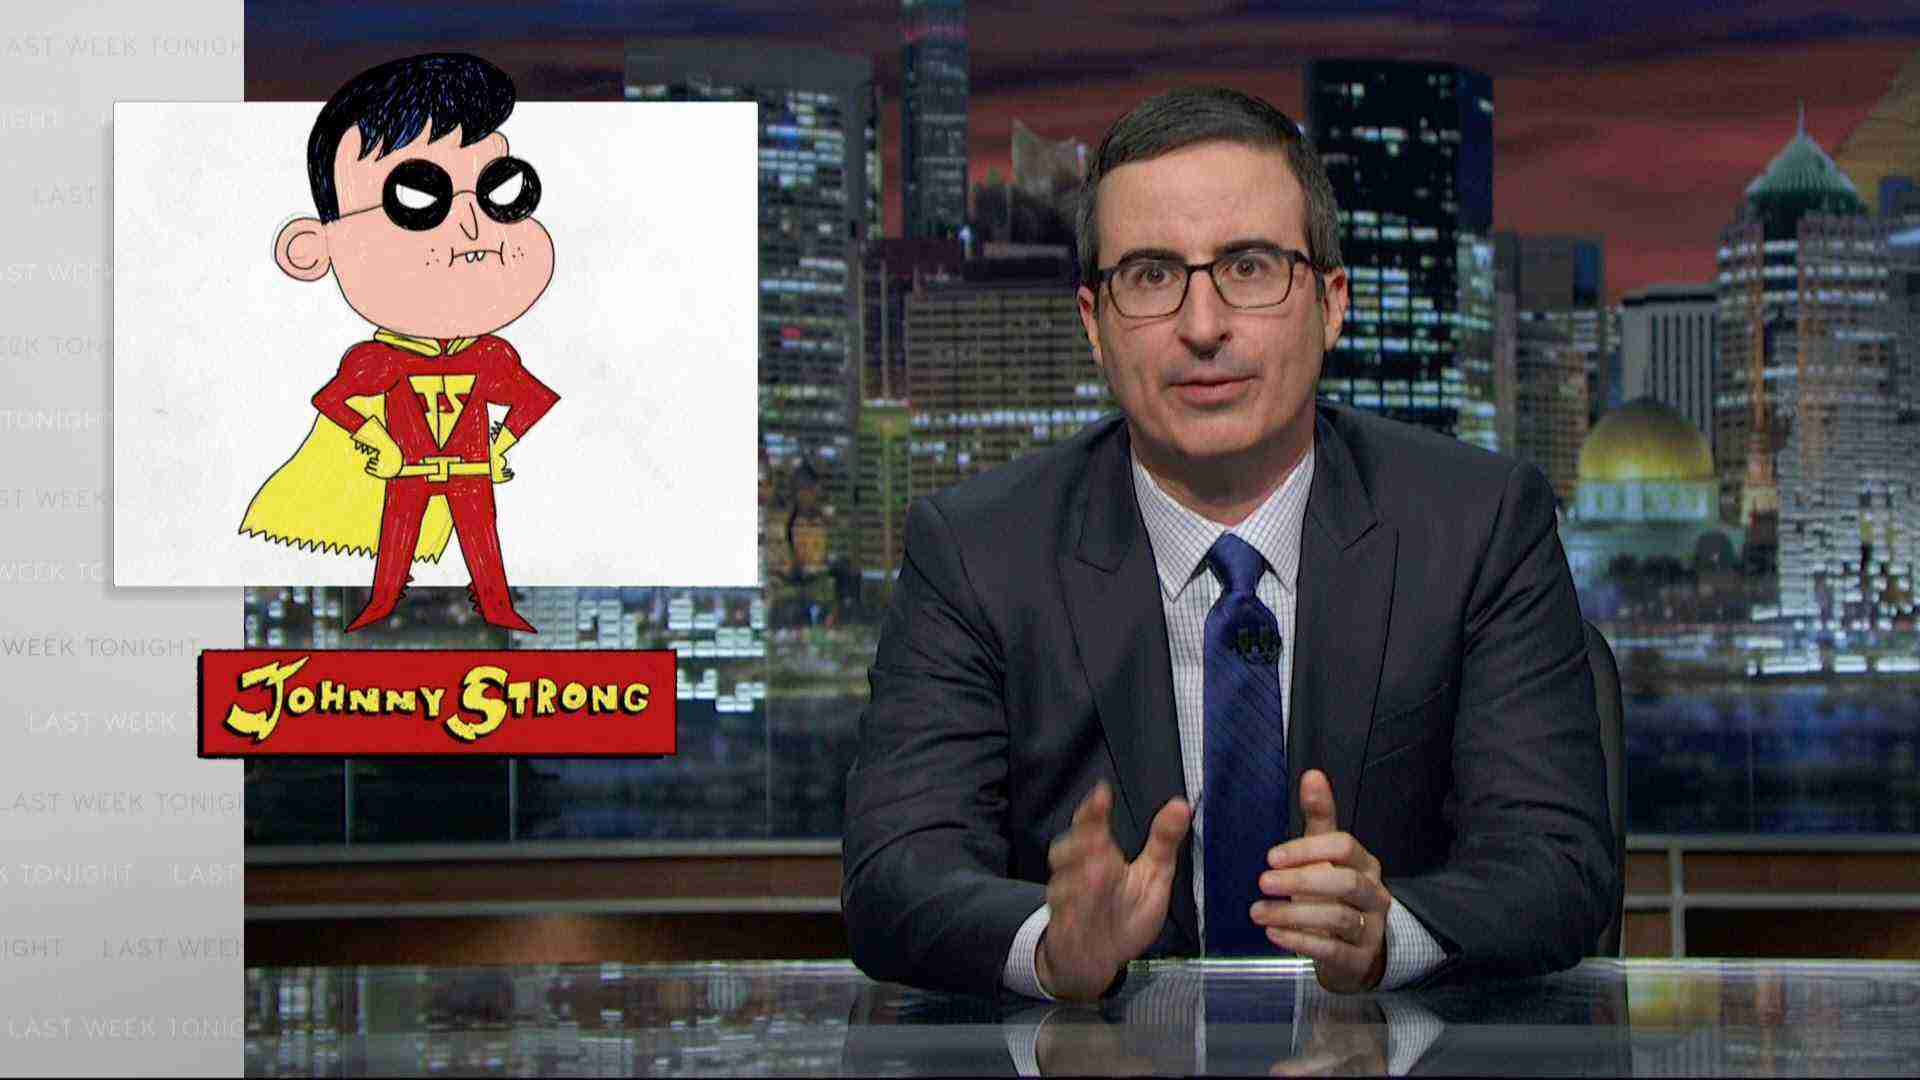 Johnny Strong: Last Week Tonight with John Oliver (Web Exclusive)